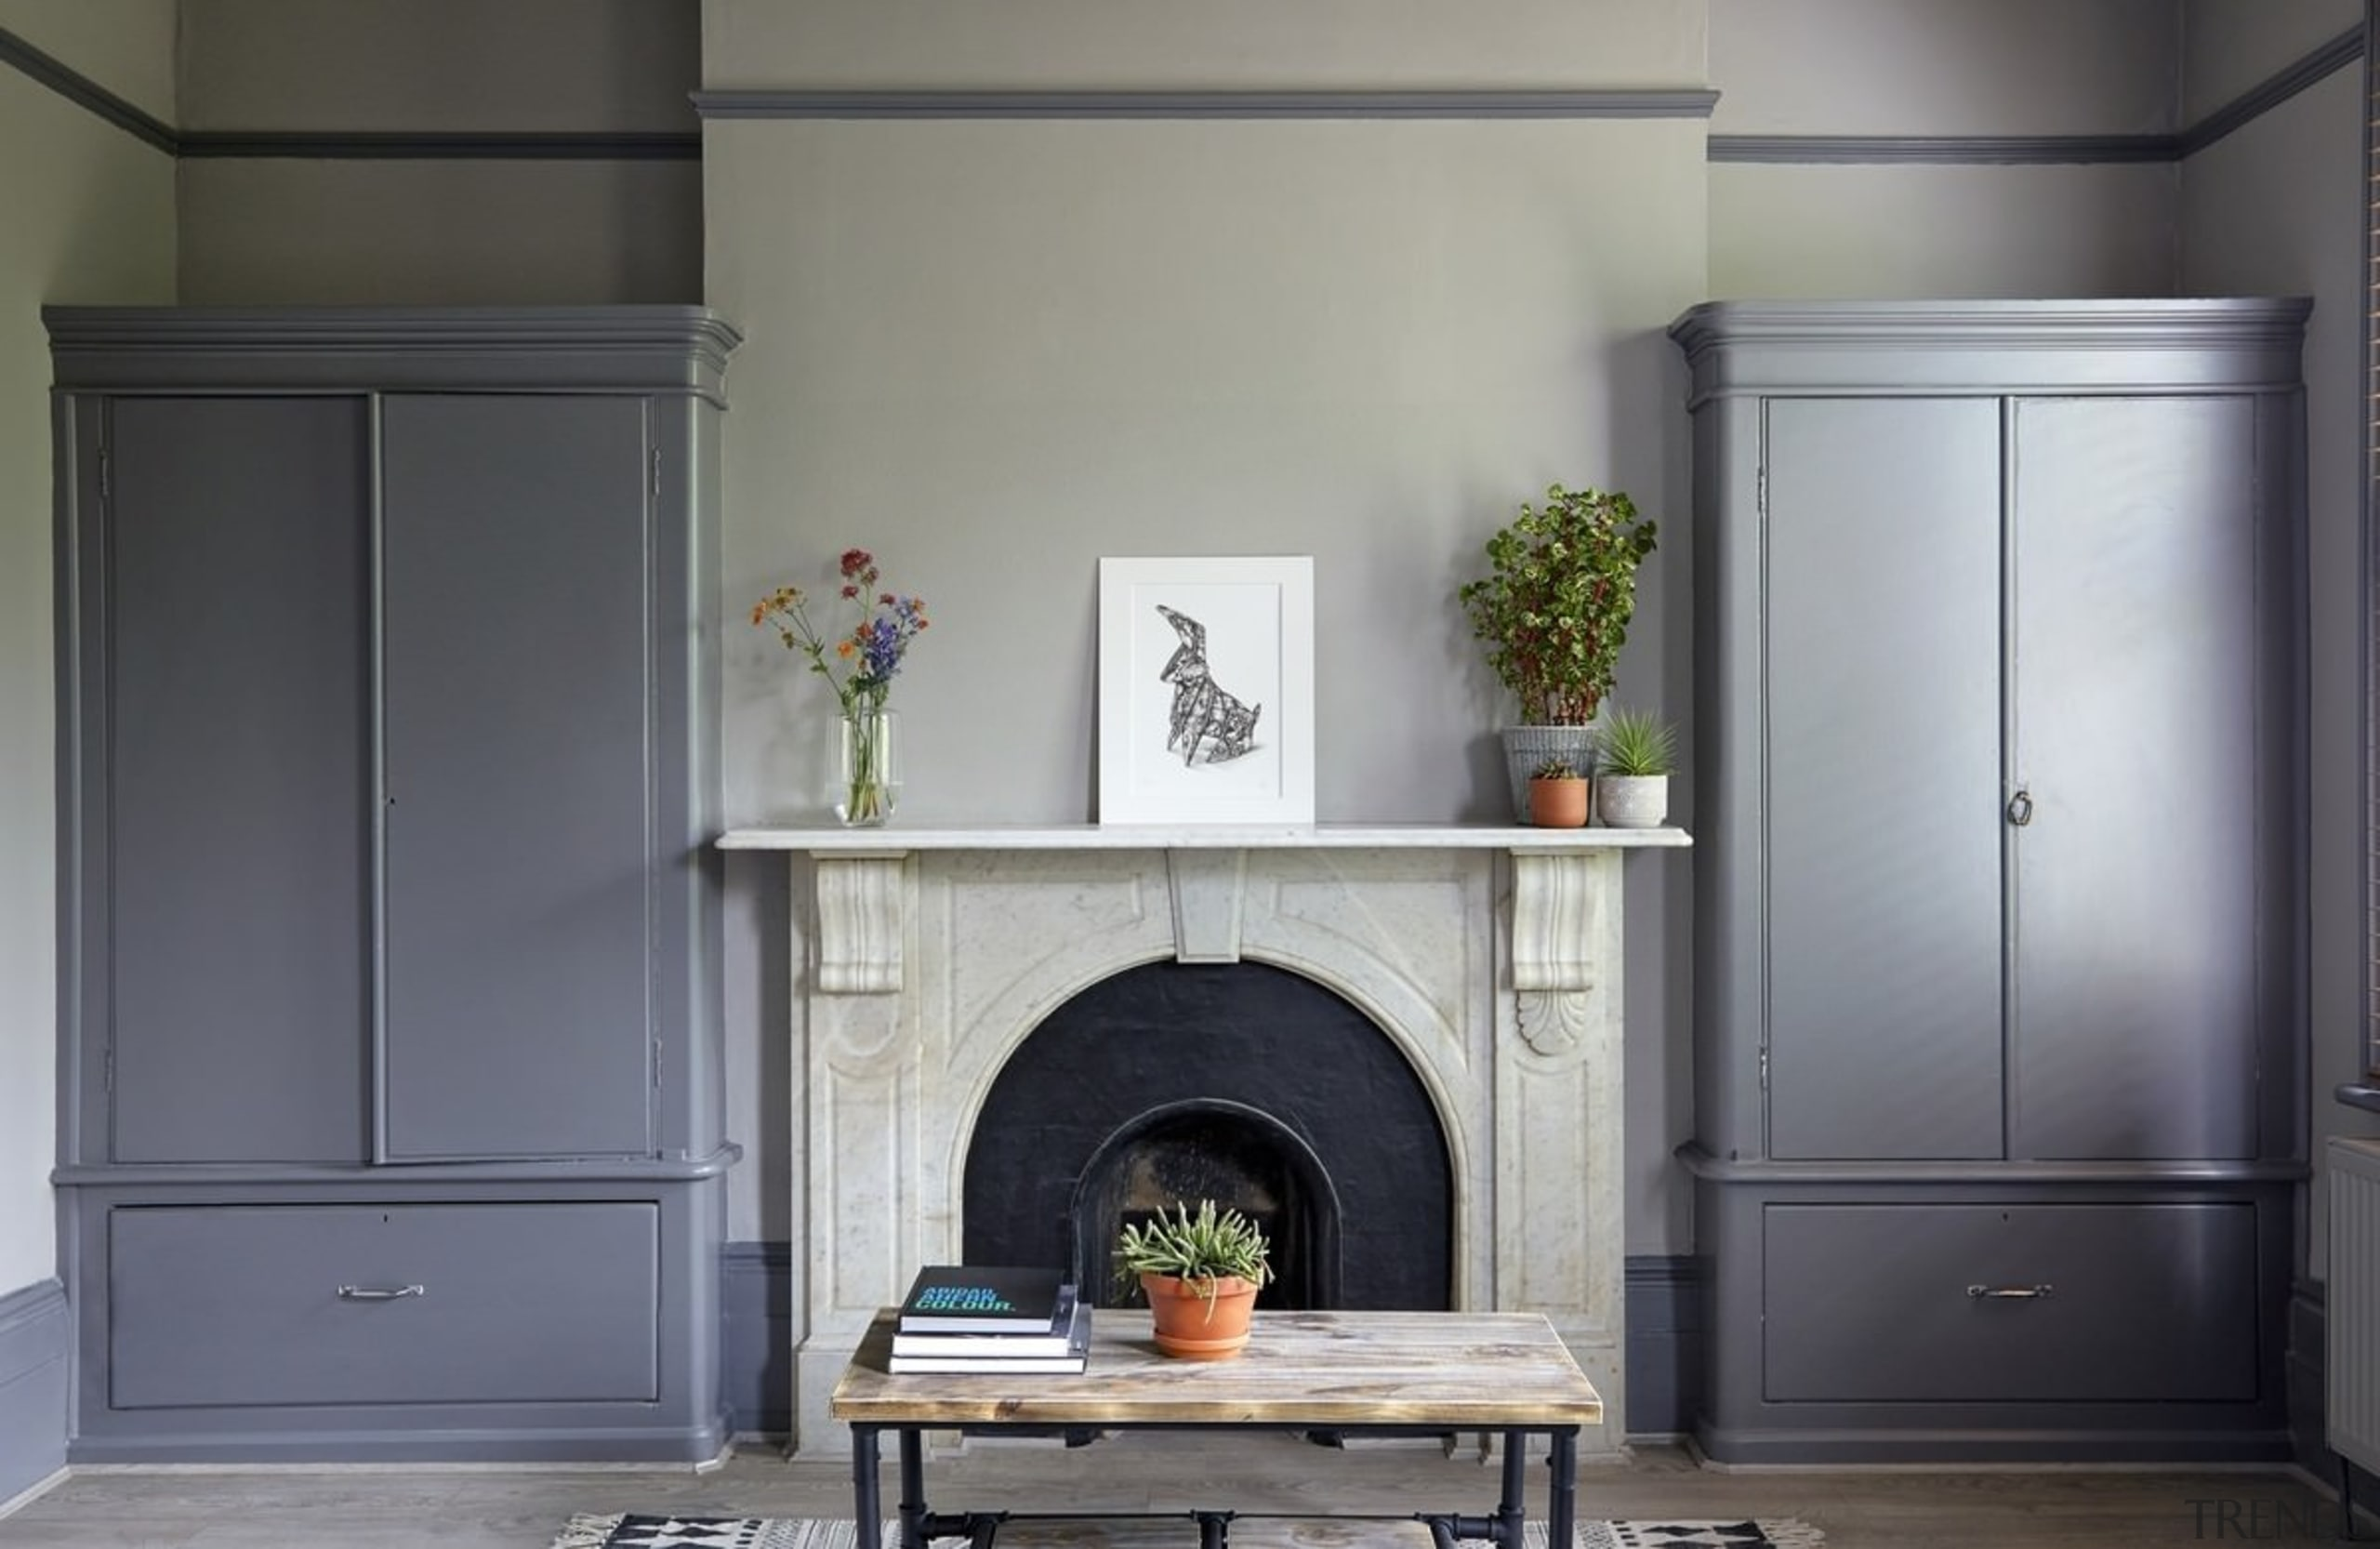 Two large cabinets sandwich the fireplace - Two furniture, home, home appliance, gray, black